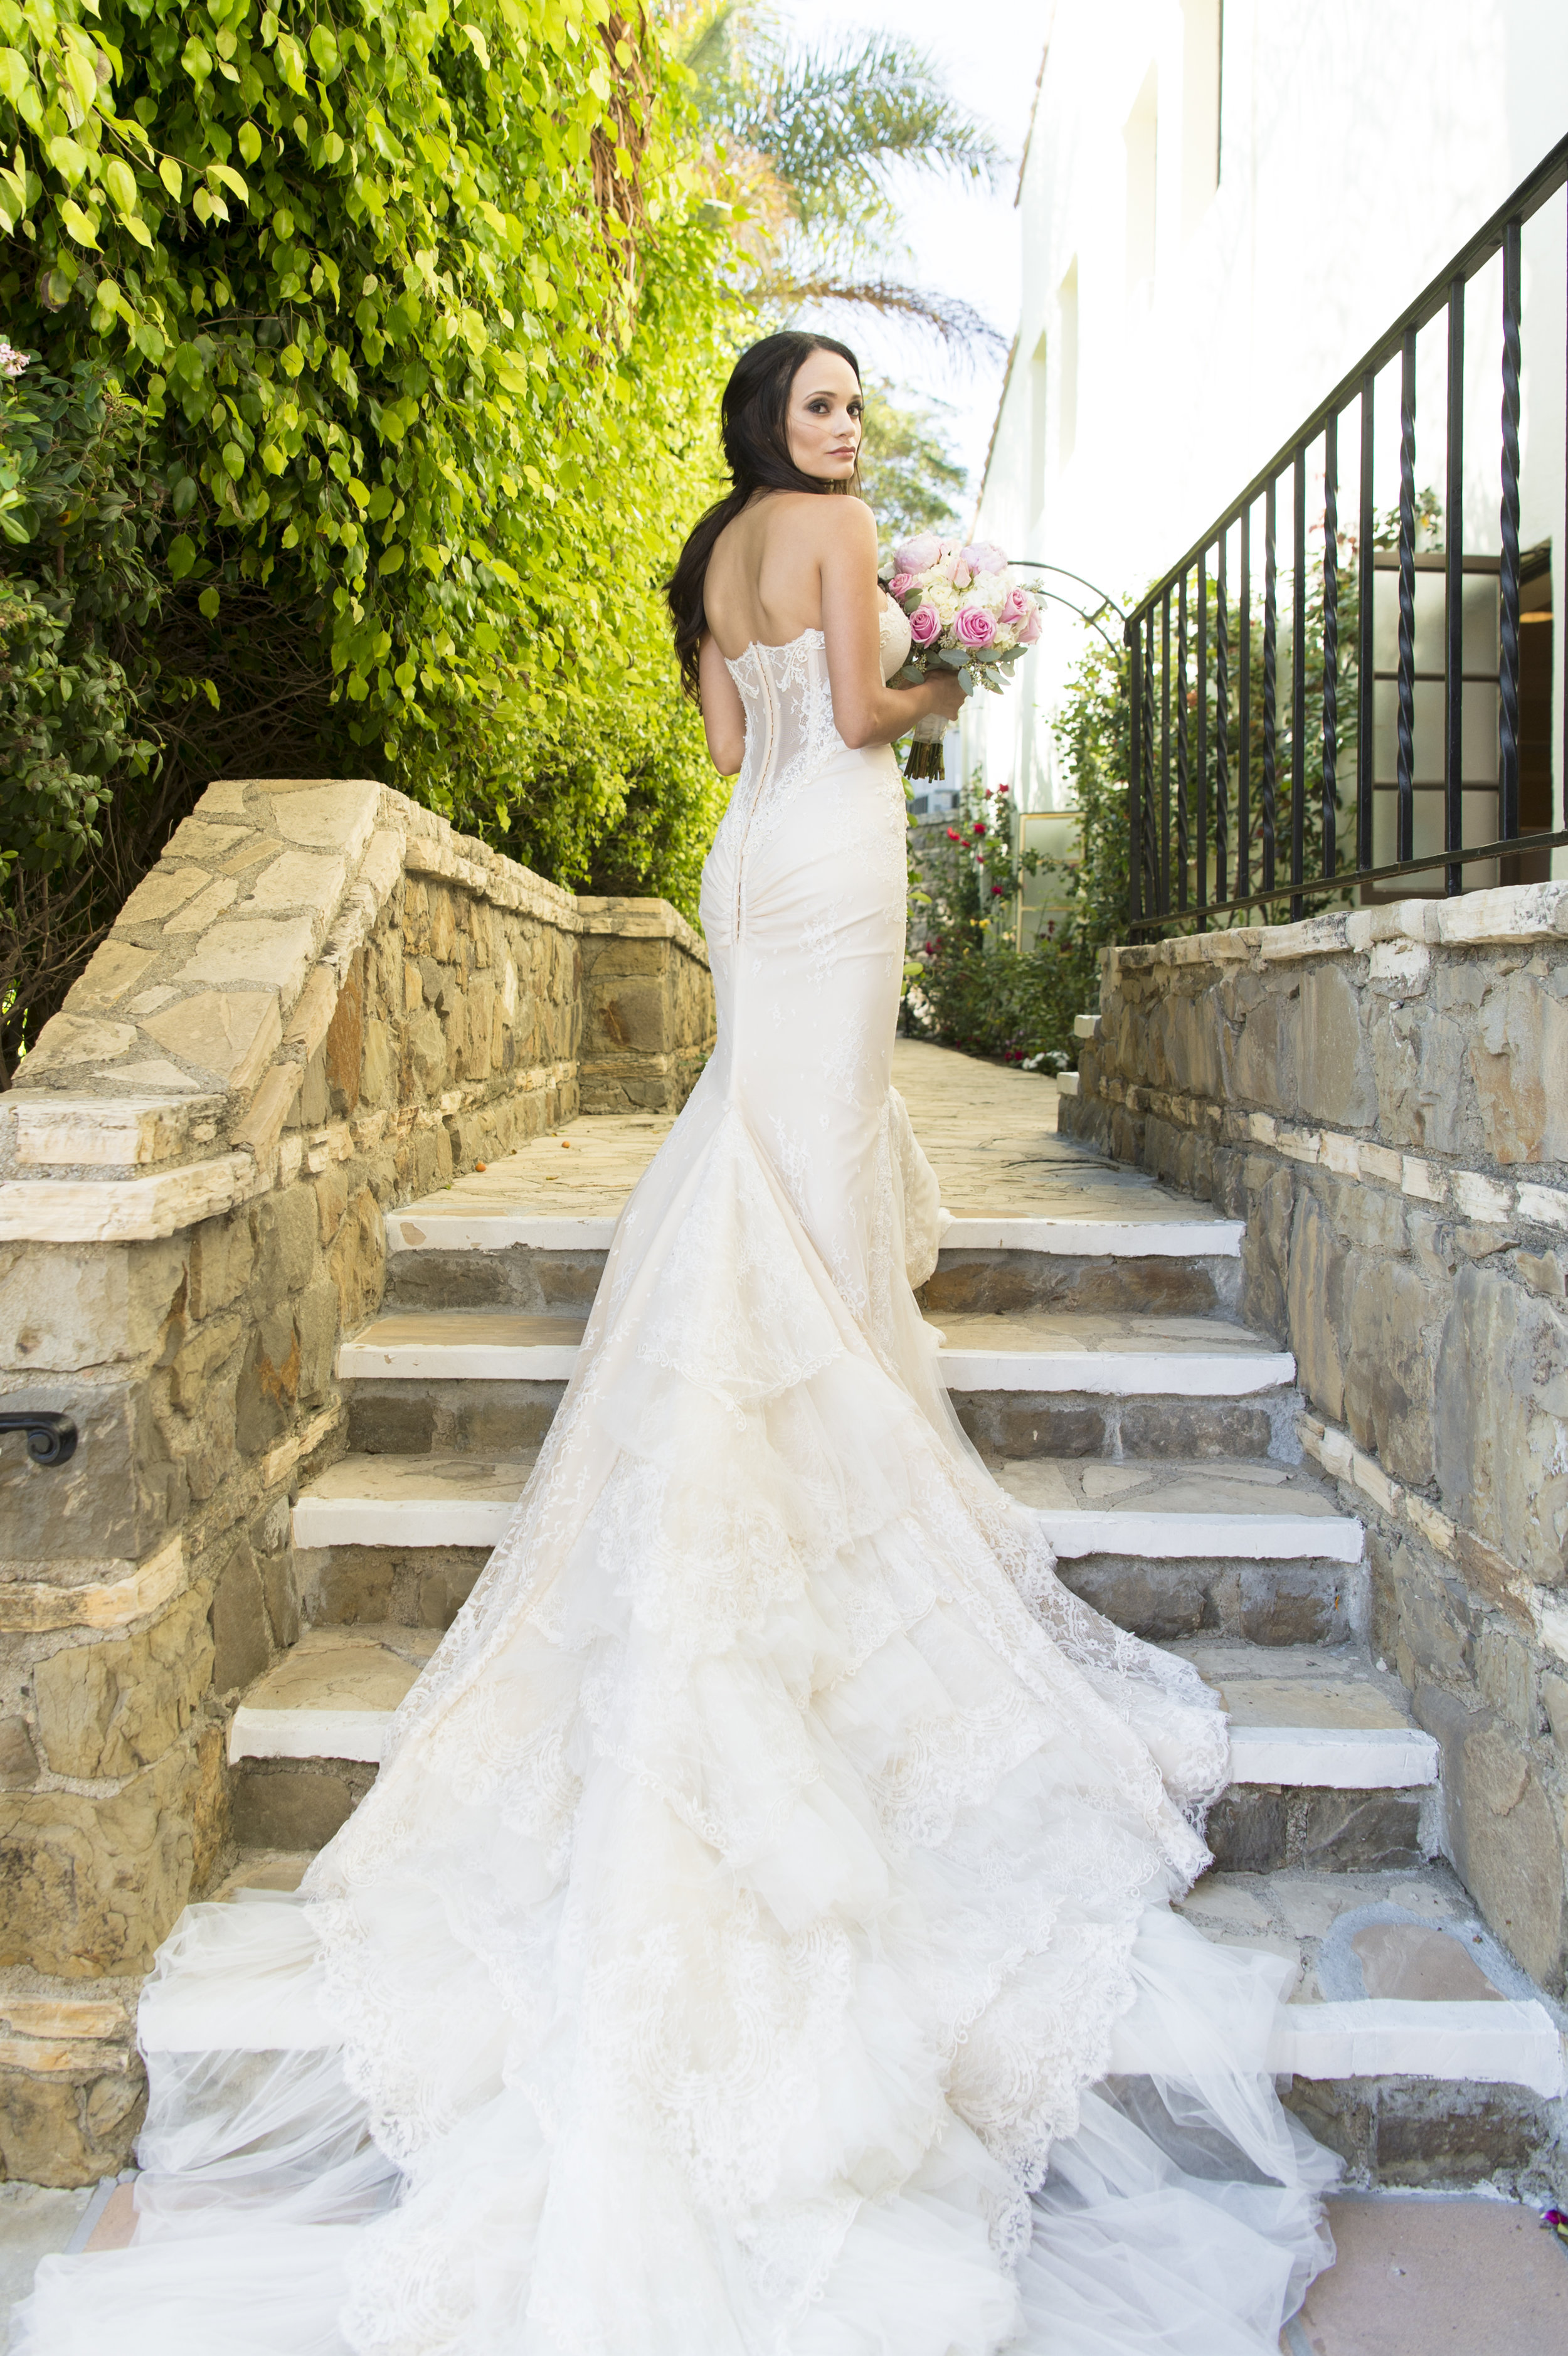 Lace Wedding Dress with Long Train - A Romantic Bel Air Bay Club Ocean-View Wedding - Southern California Wedding - Kevin Dinh Photography